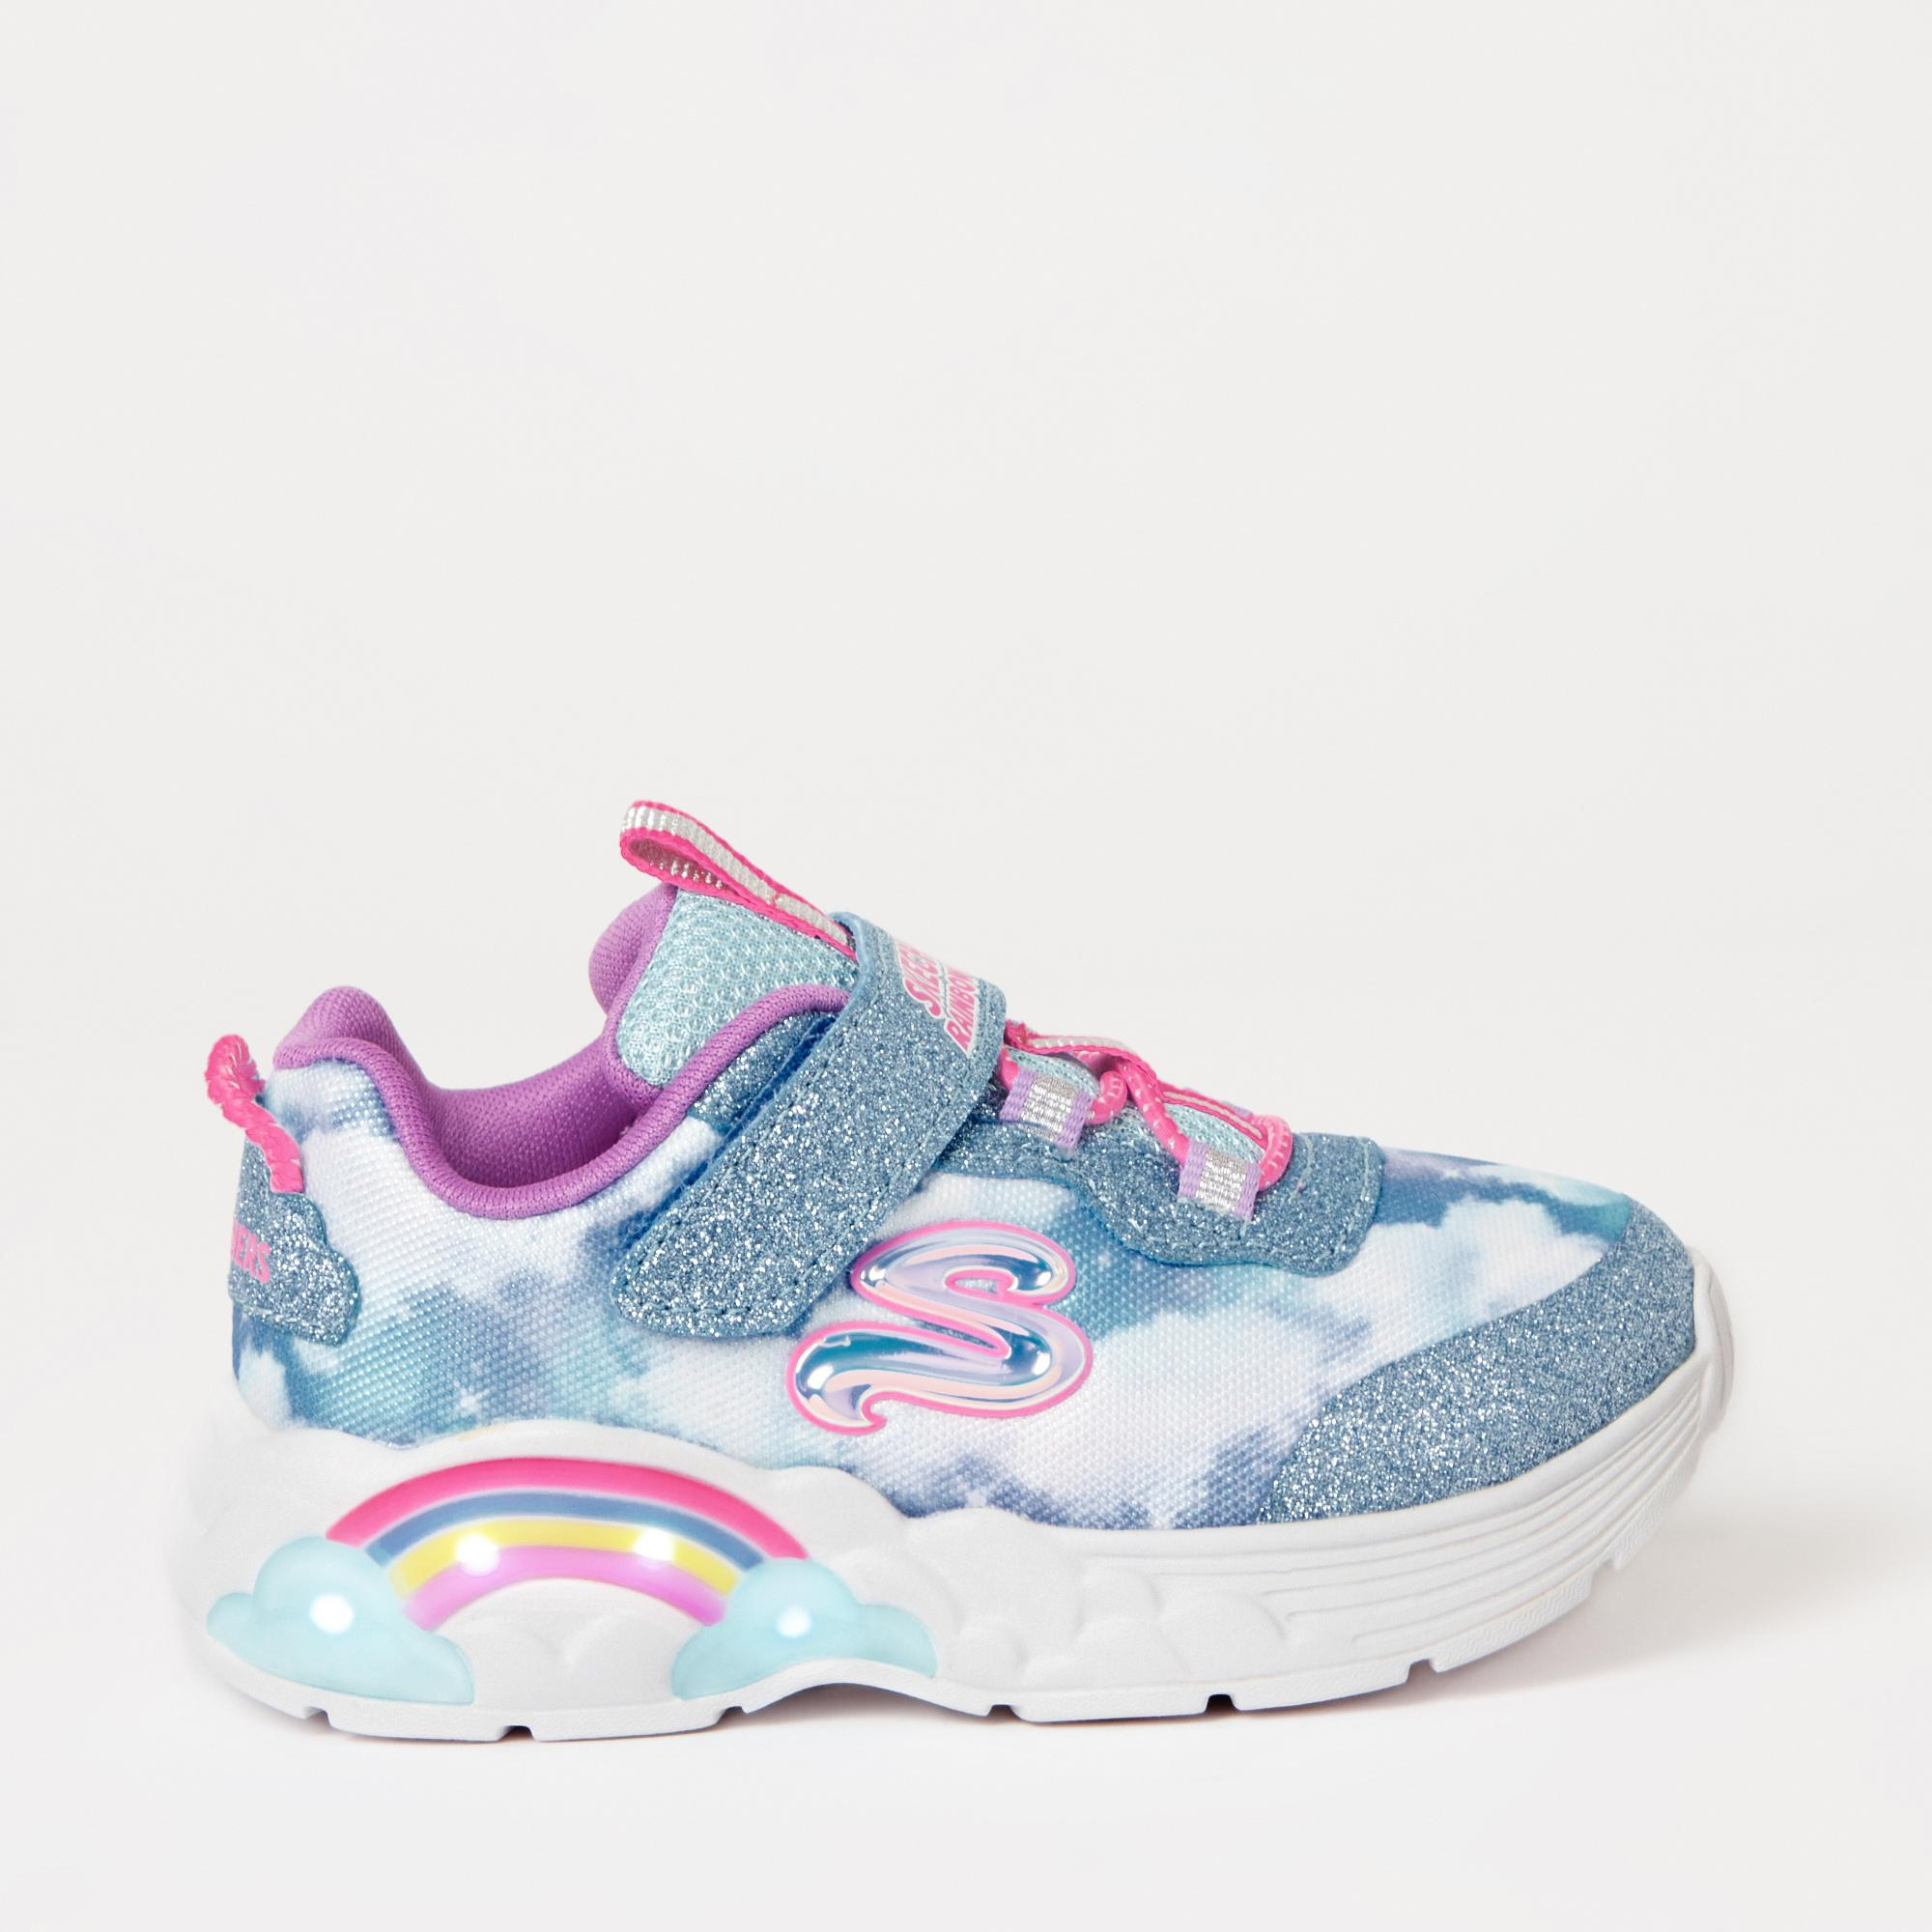 skechers kids sale